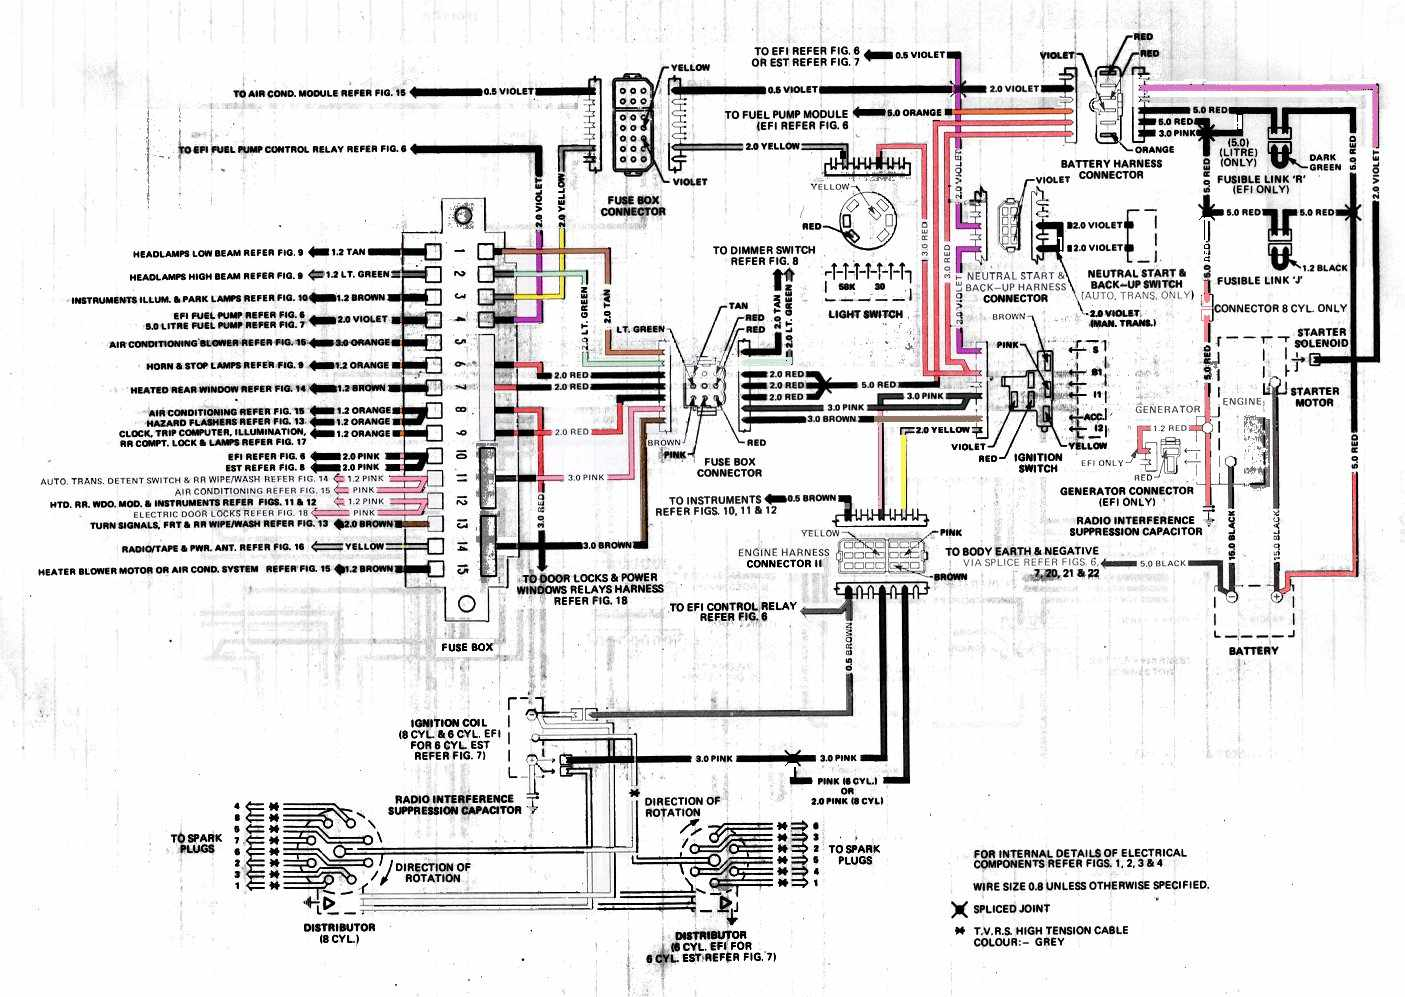 Wiring Diagram Generator : October all about wiring diagrams